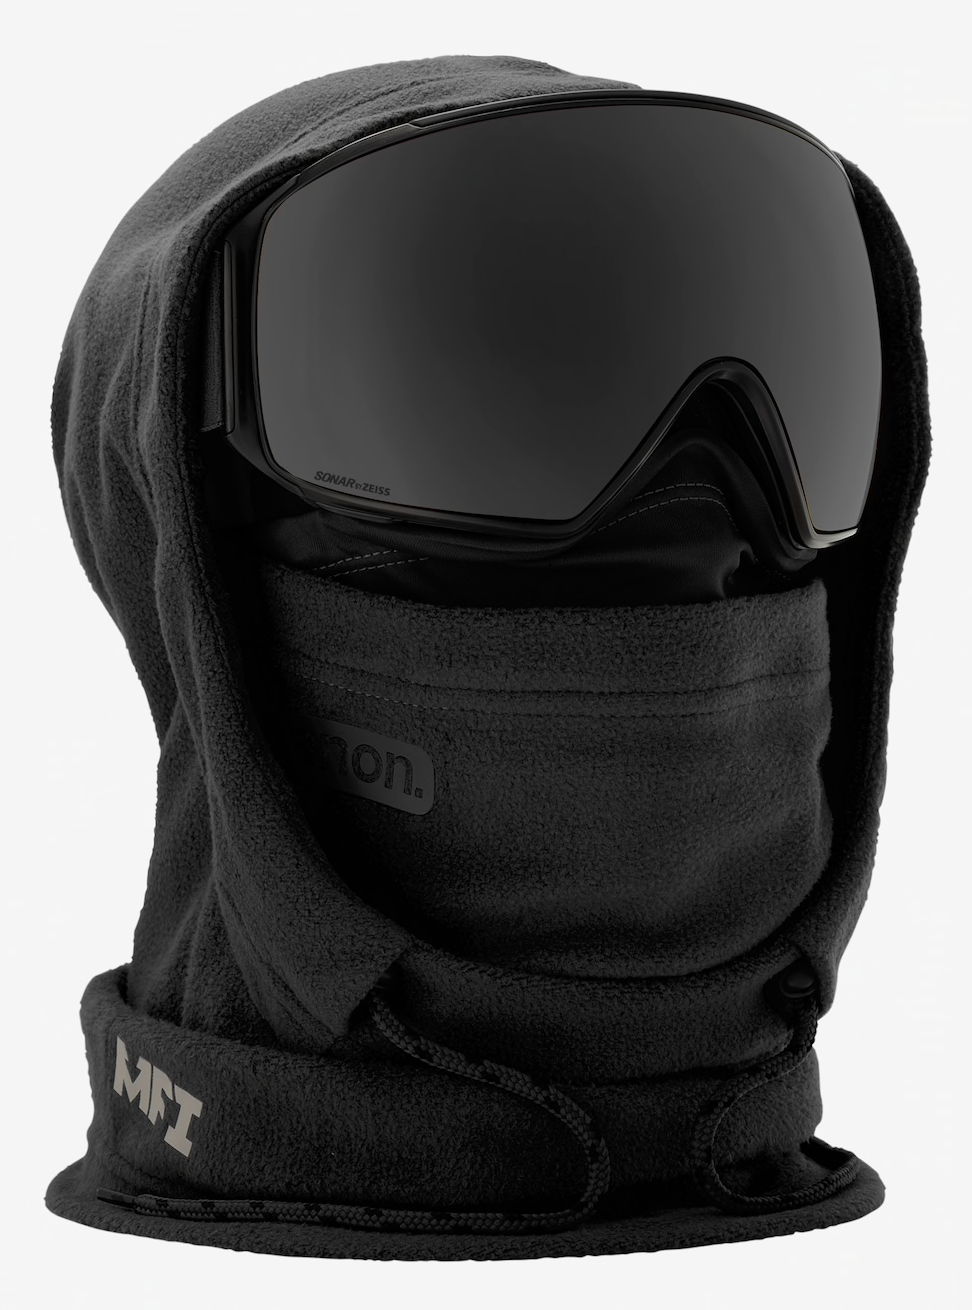 Anon MFI Fleece Helmet Hood - Black